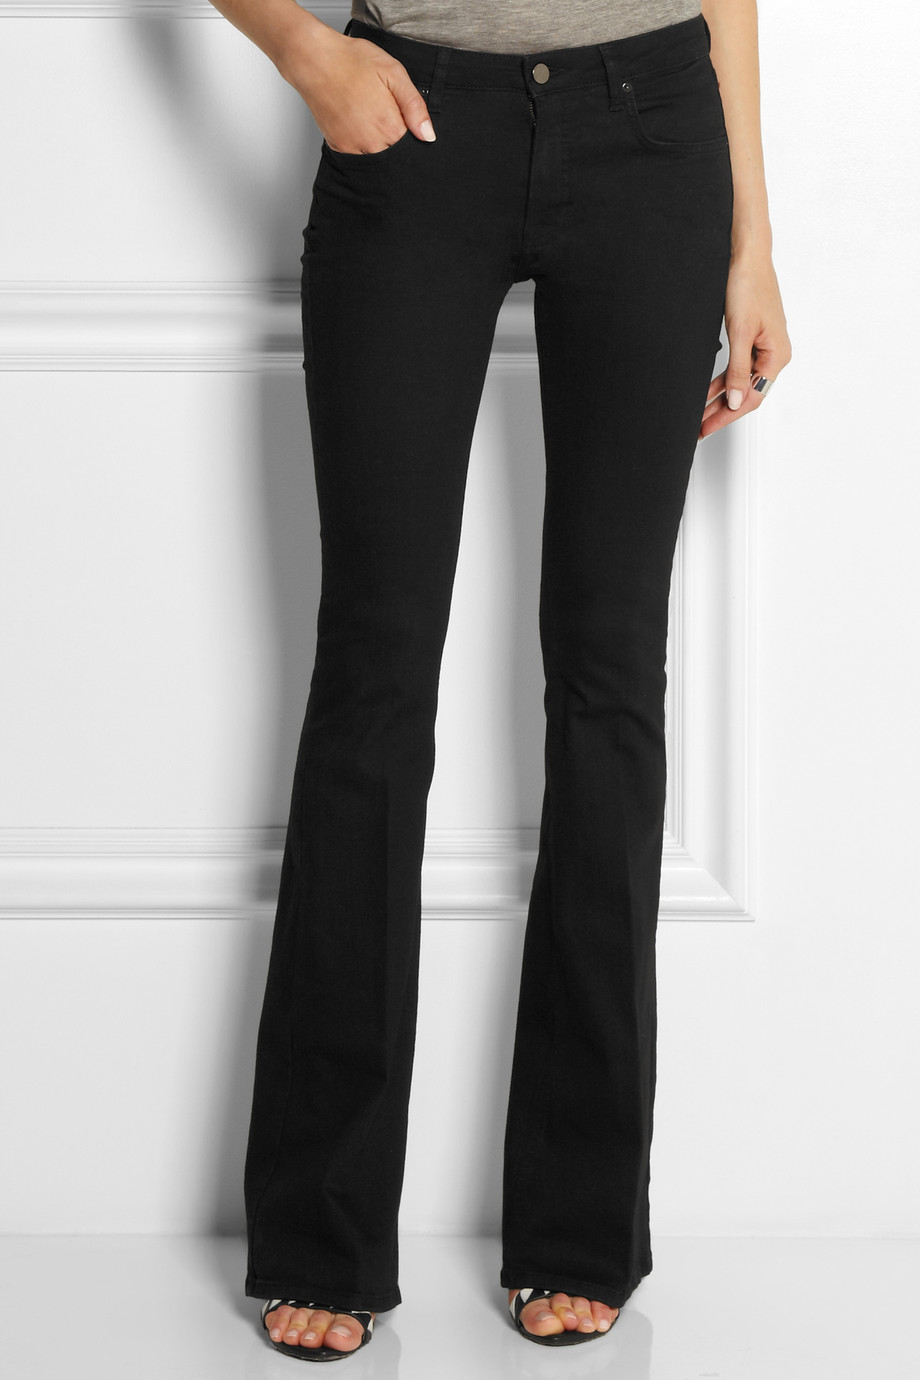 Victoria beckham Midrise Flared Jeans in Black | Lyst